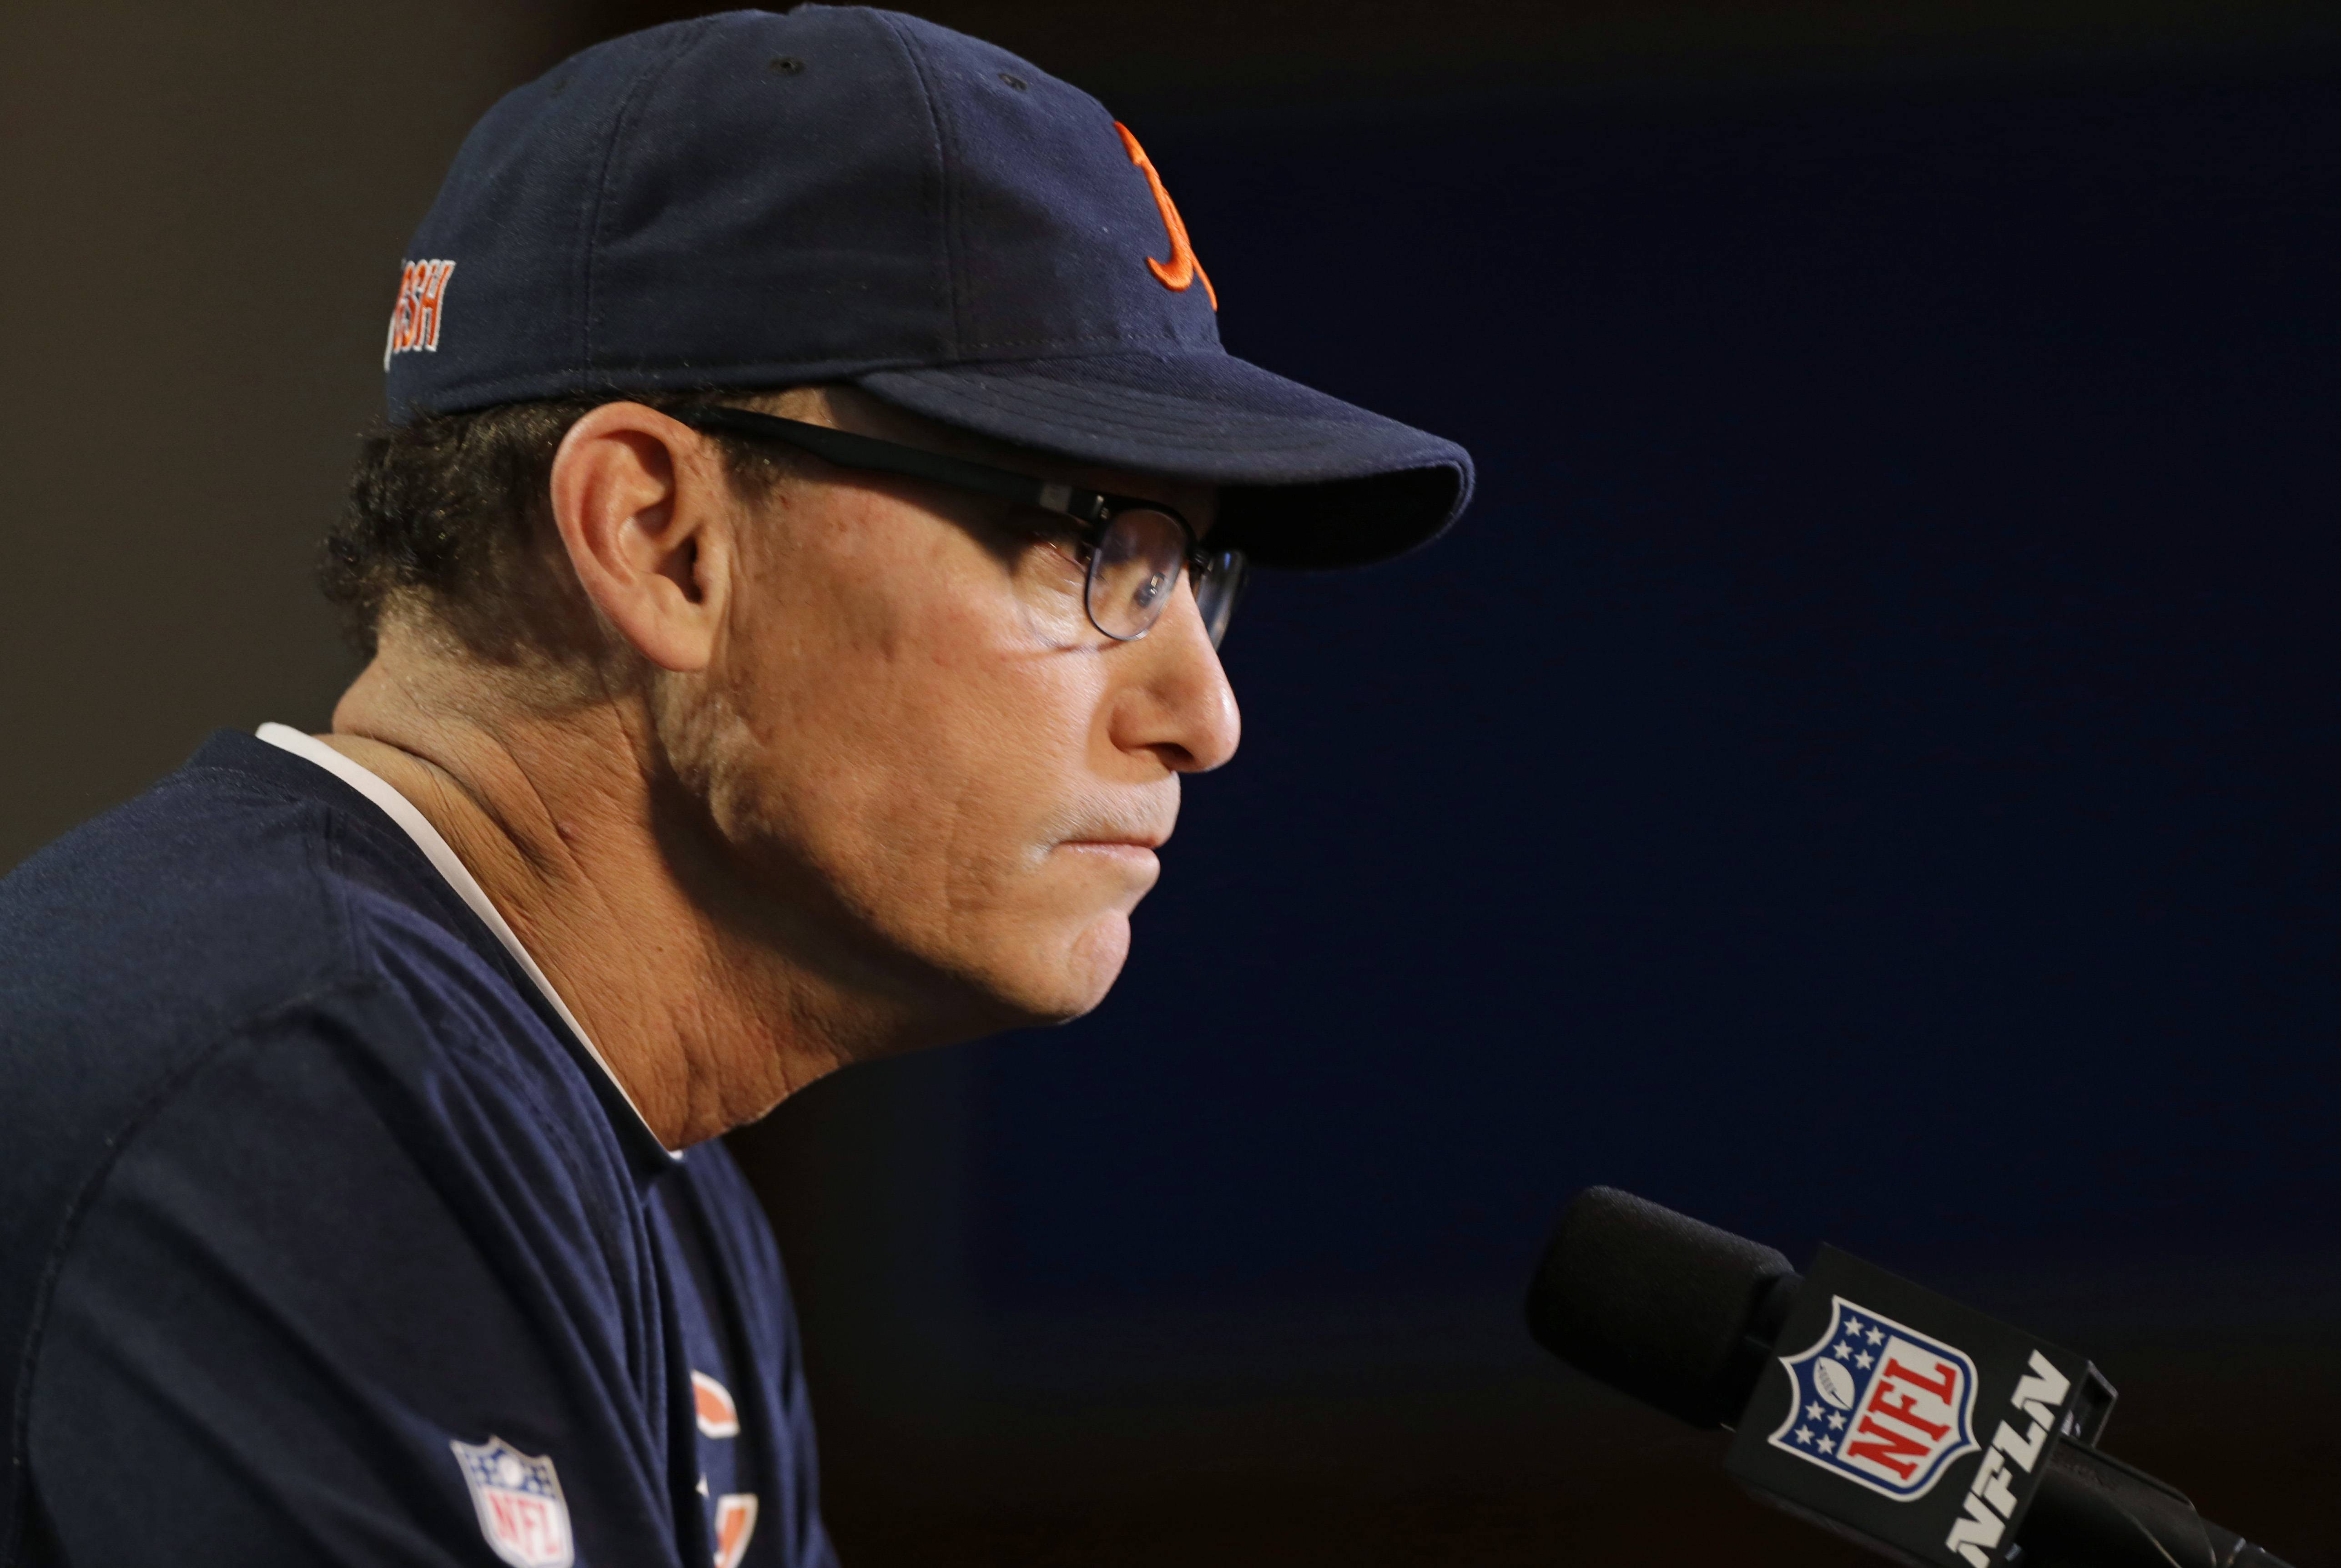 Bears coach Marc Trestman gets his first opportunity this summer to do some serious game-situation evaluations Friday night when the Bears open the preseason against the Philadelphia Eagles at Soldier Field.